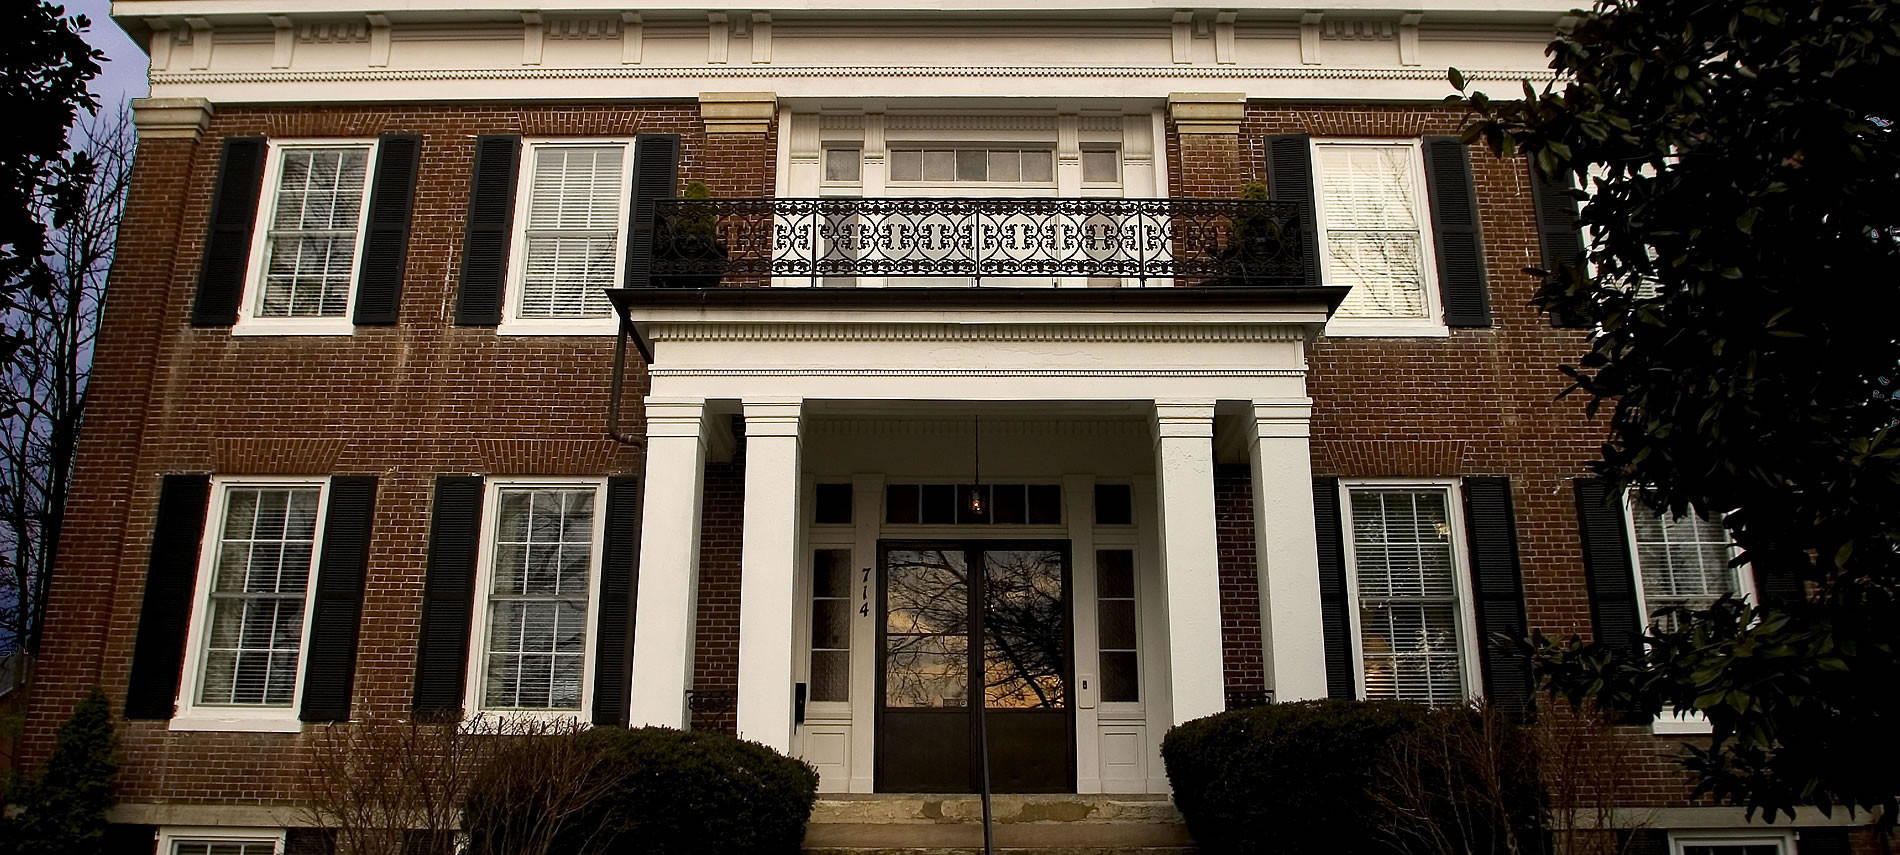 Bourbon Manor B&B has a brick facade with black shutters, white portico entrance with metal railing balcony